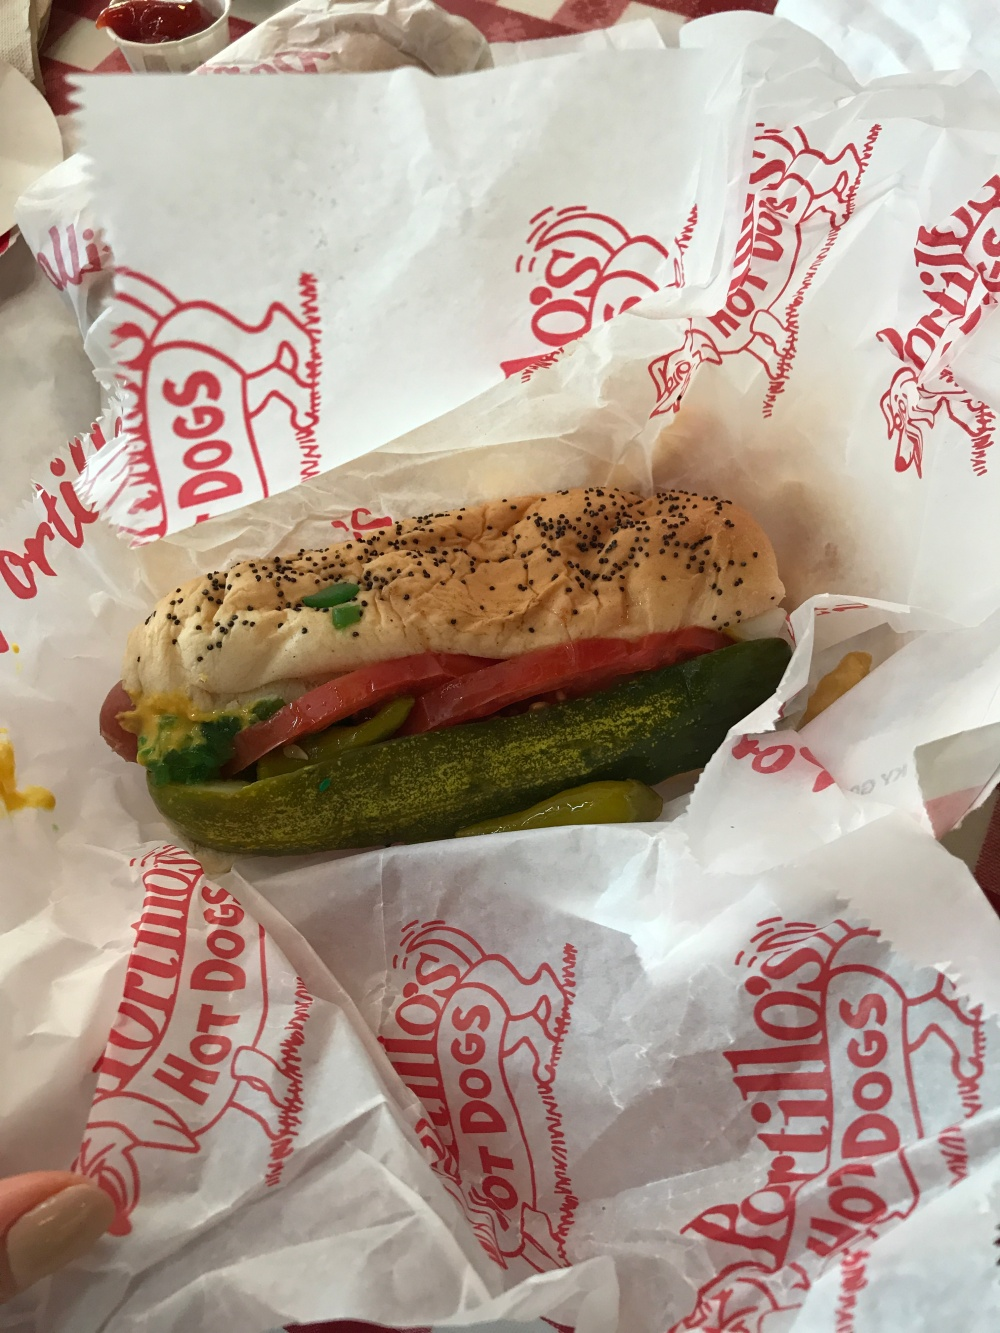 Portillo's hot dog with pickle and tomato on a poppy seed bun